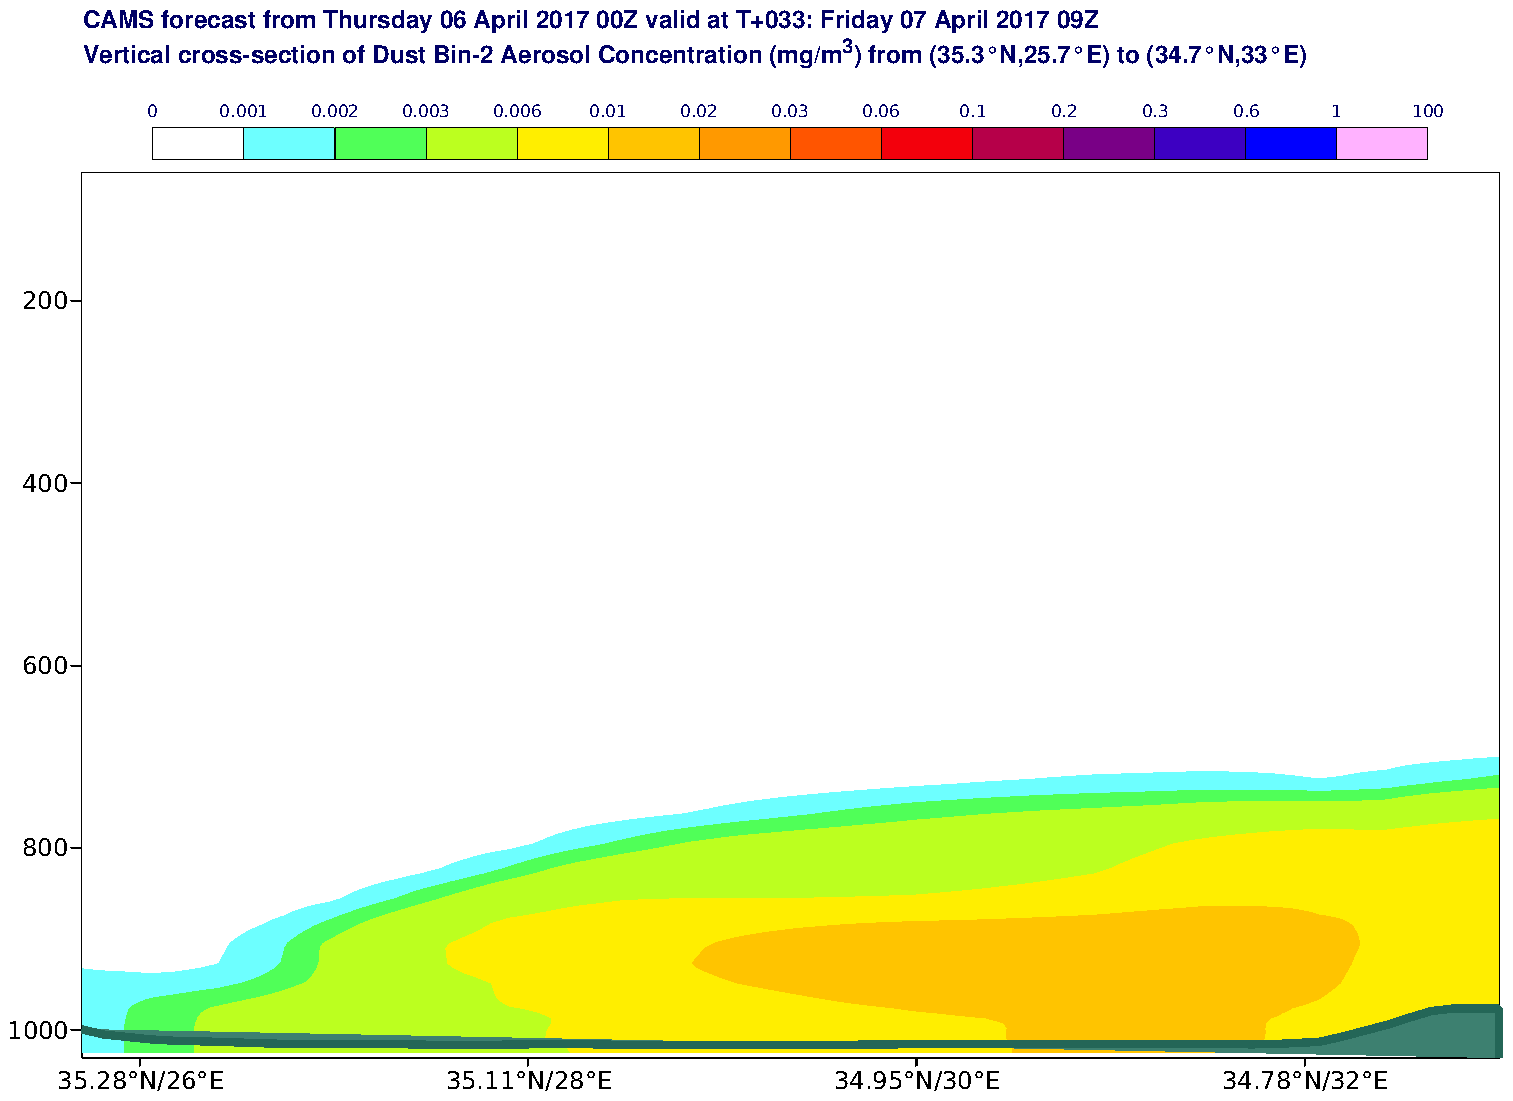 Vertical cross-section of Dust Bin-2 Aerosol Concentration (mg/m3) valid at T33 - 2017-04-07 09:00